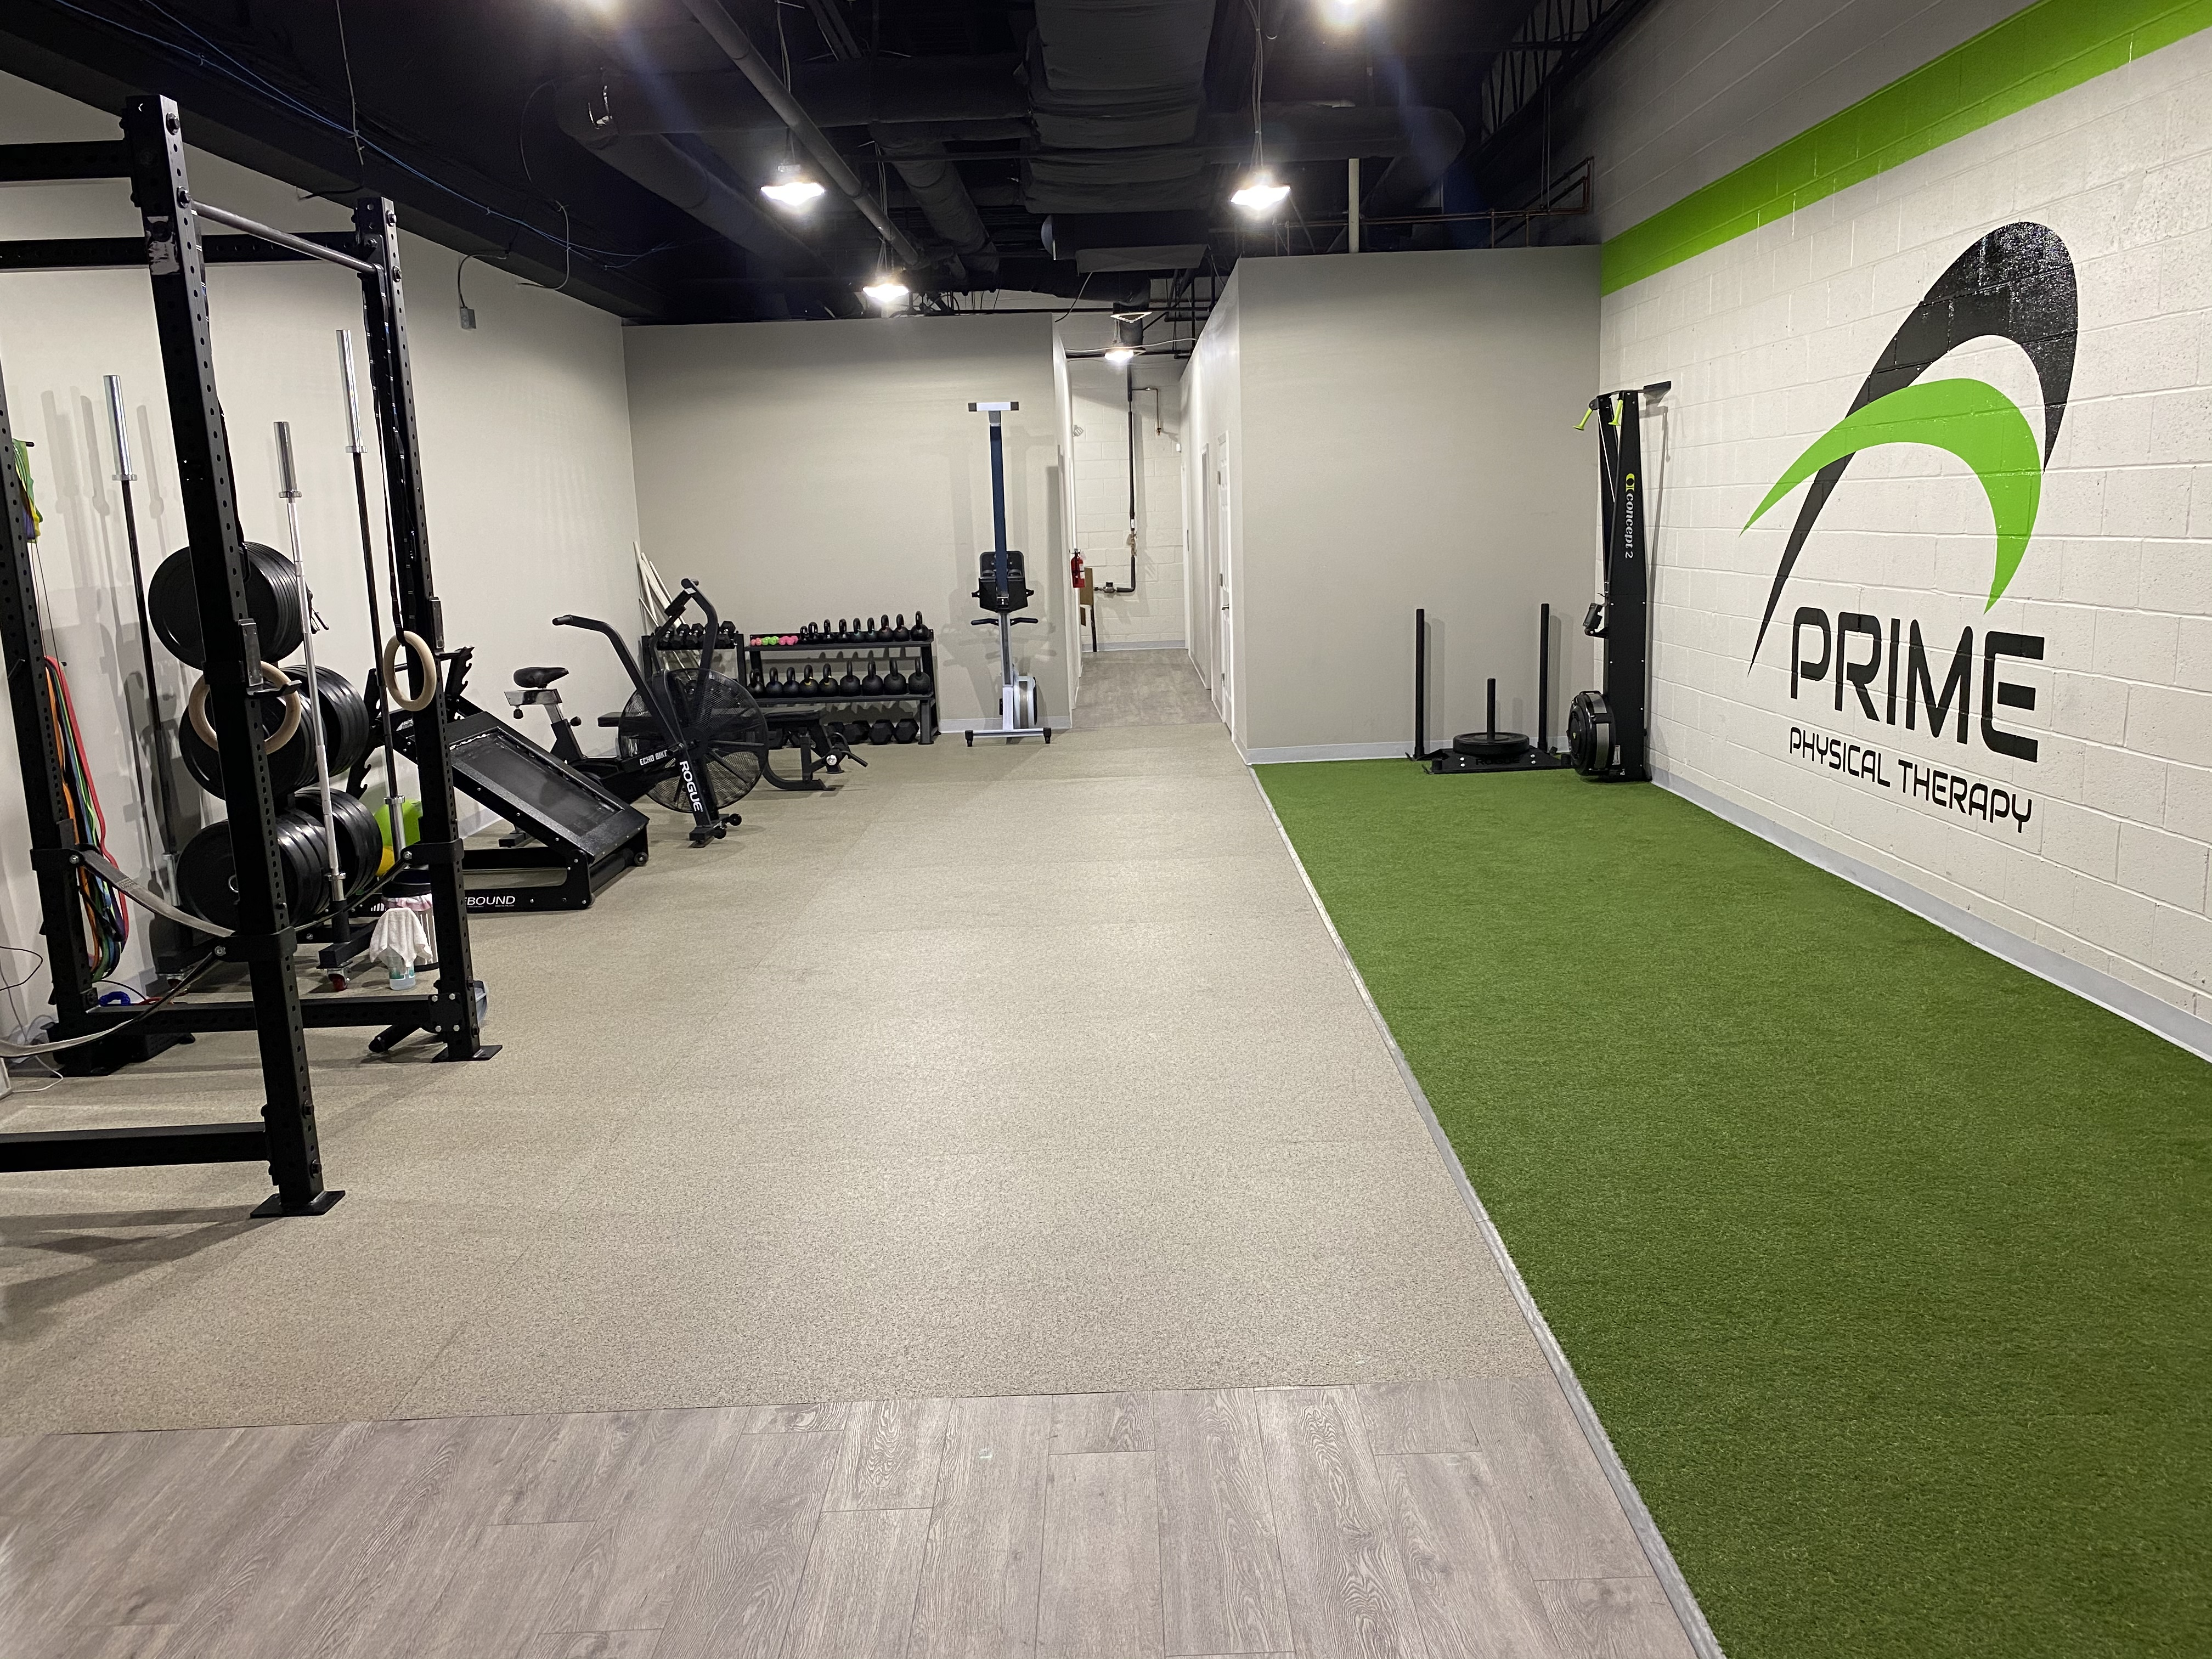 PRIME Physical Therapy clinic and gym with fitness equipment, fitness bike, and strength equipment